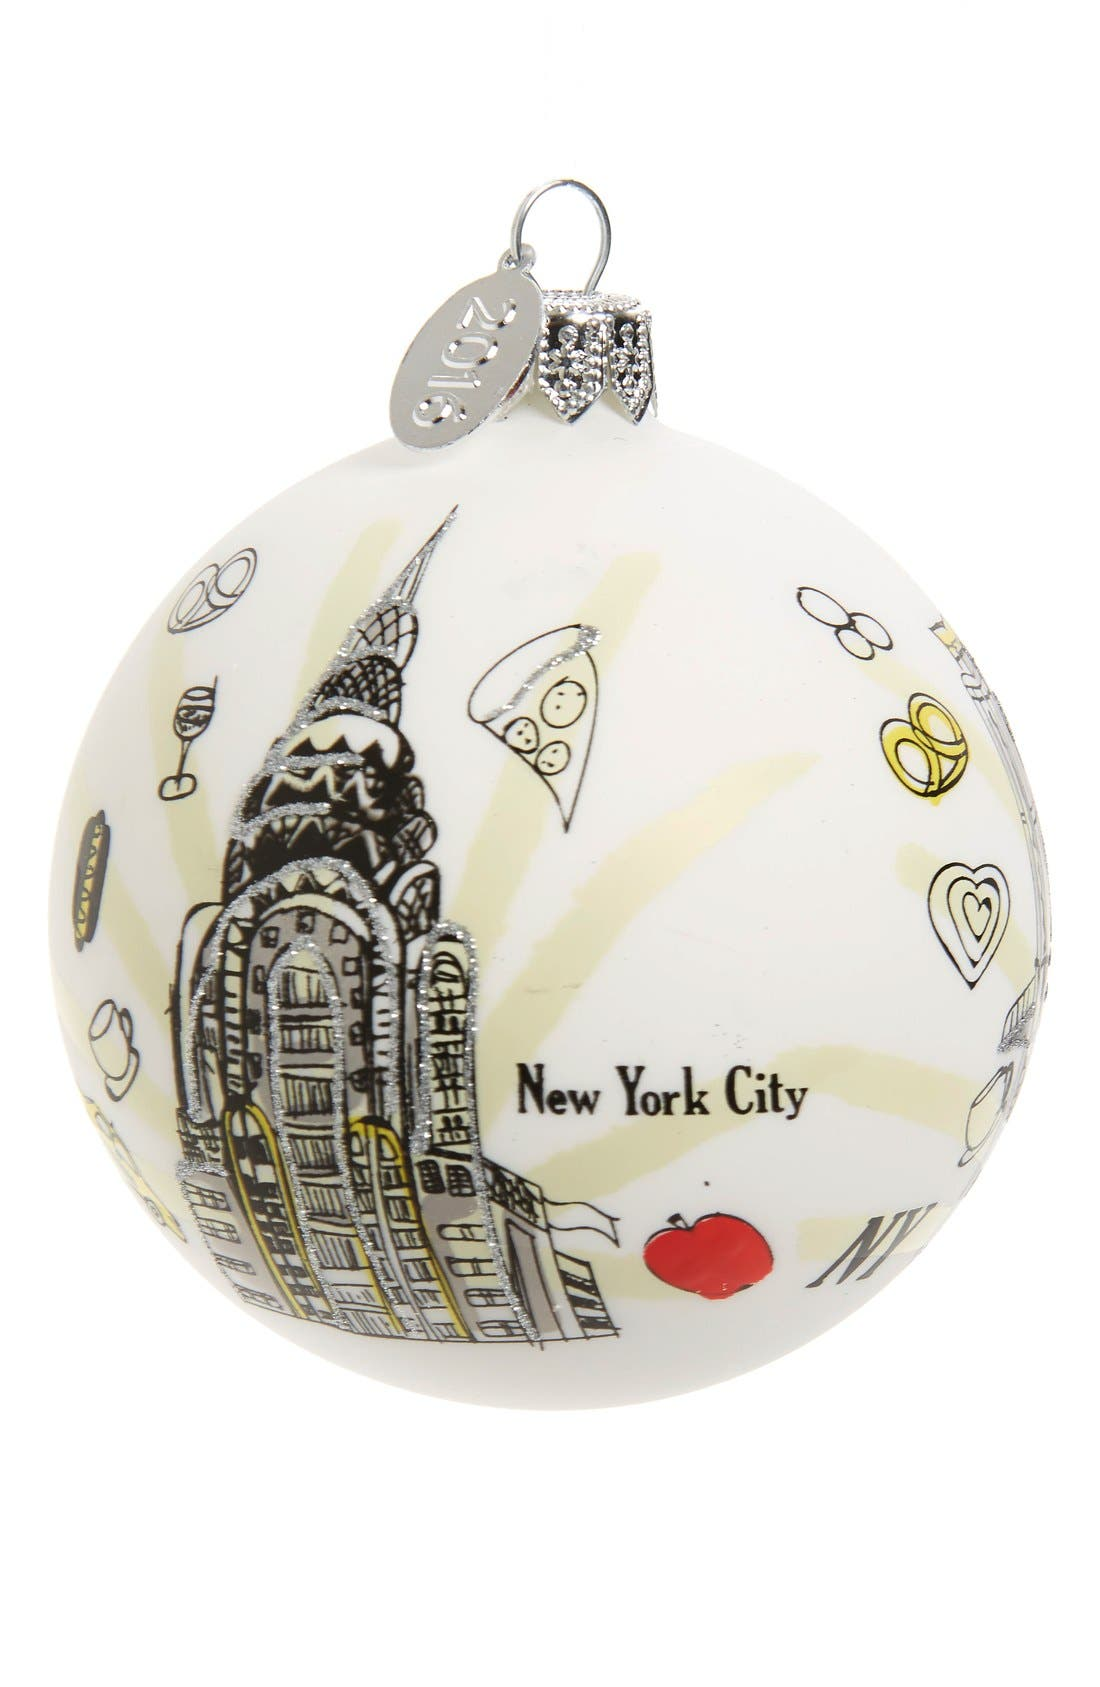 Nordstrom at Home 'Travel' Handblown Glass Ball Ornament